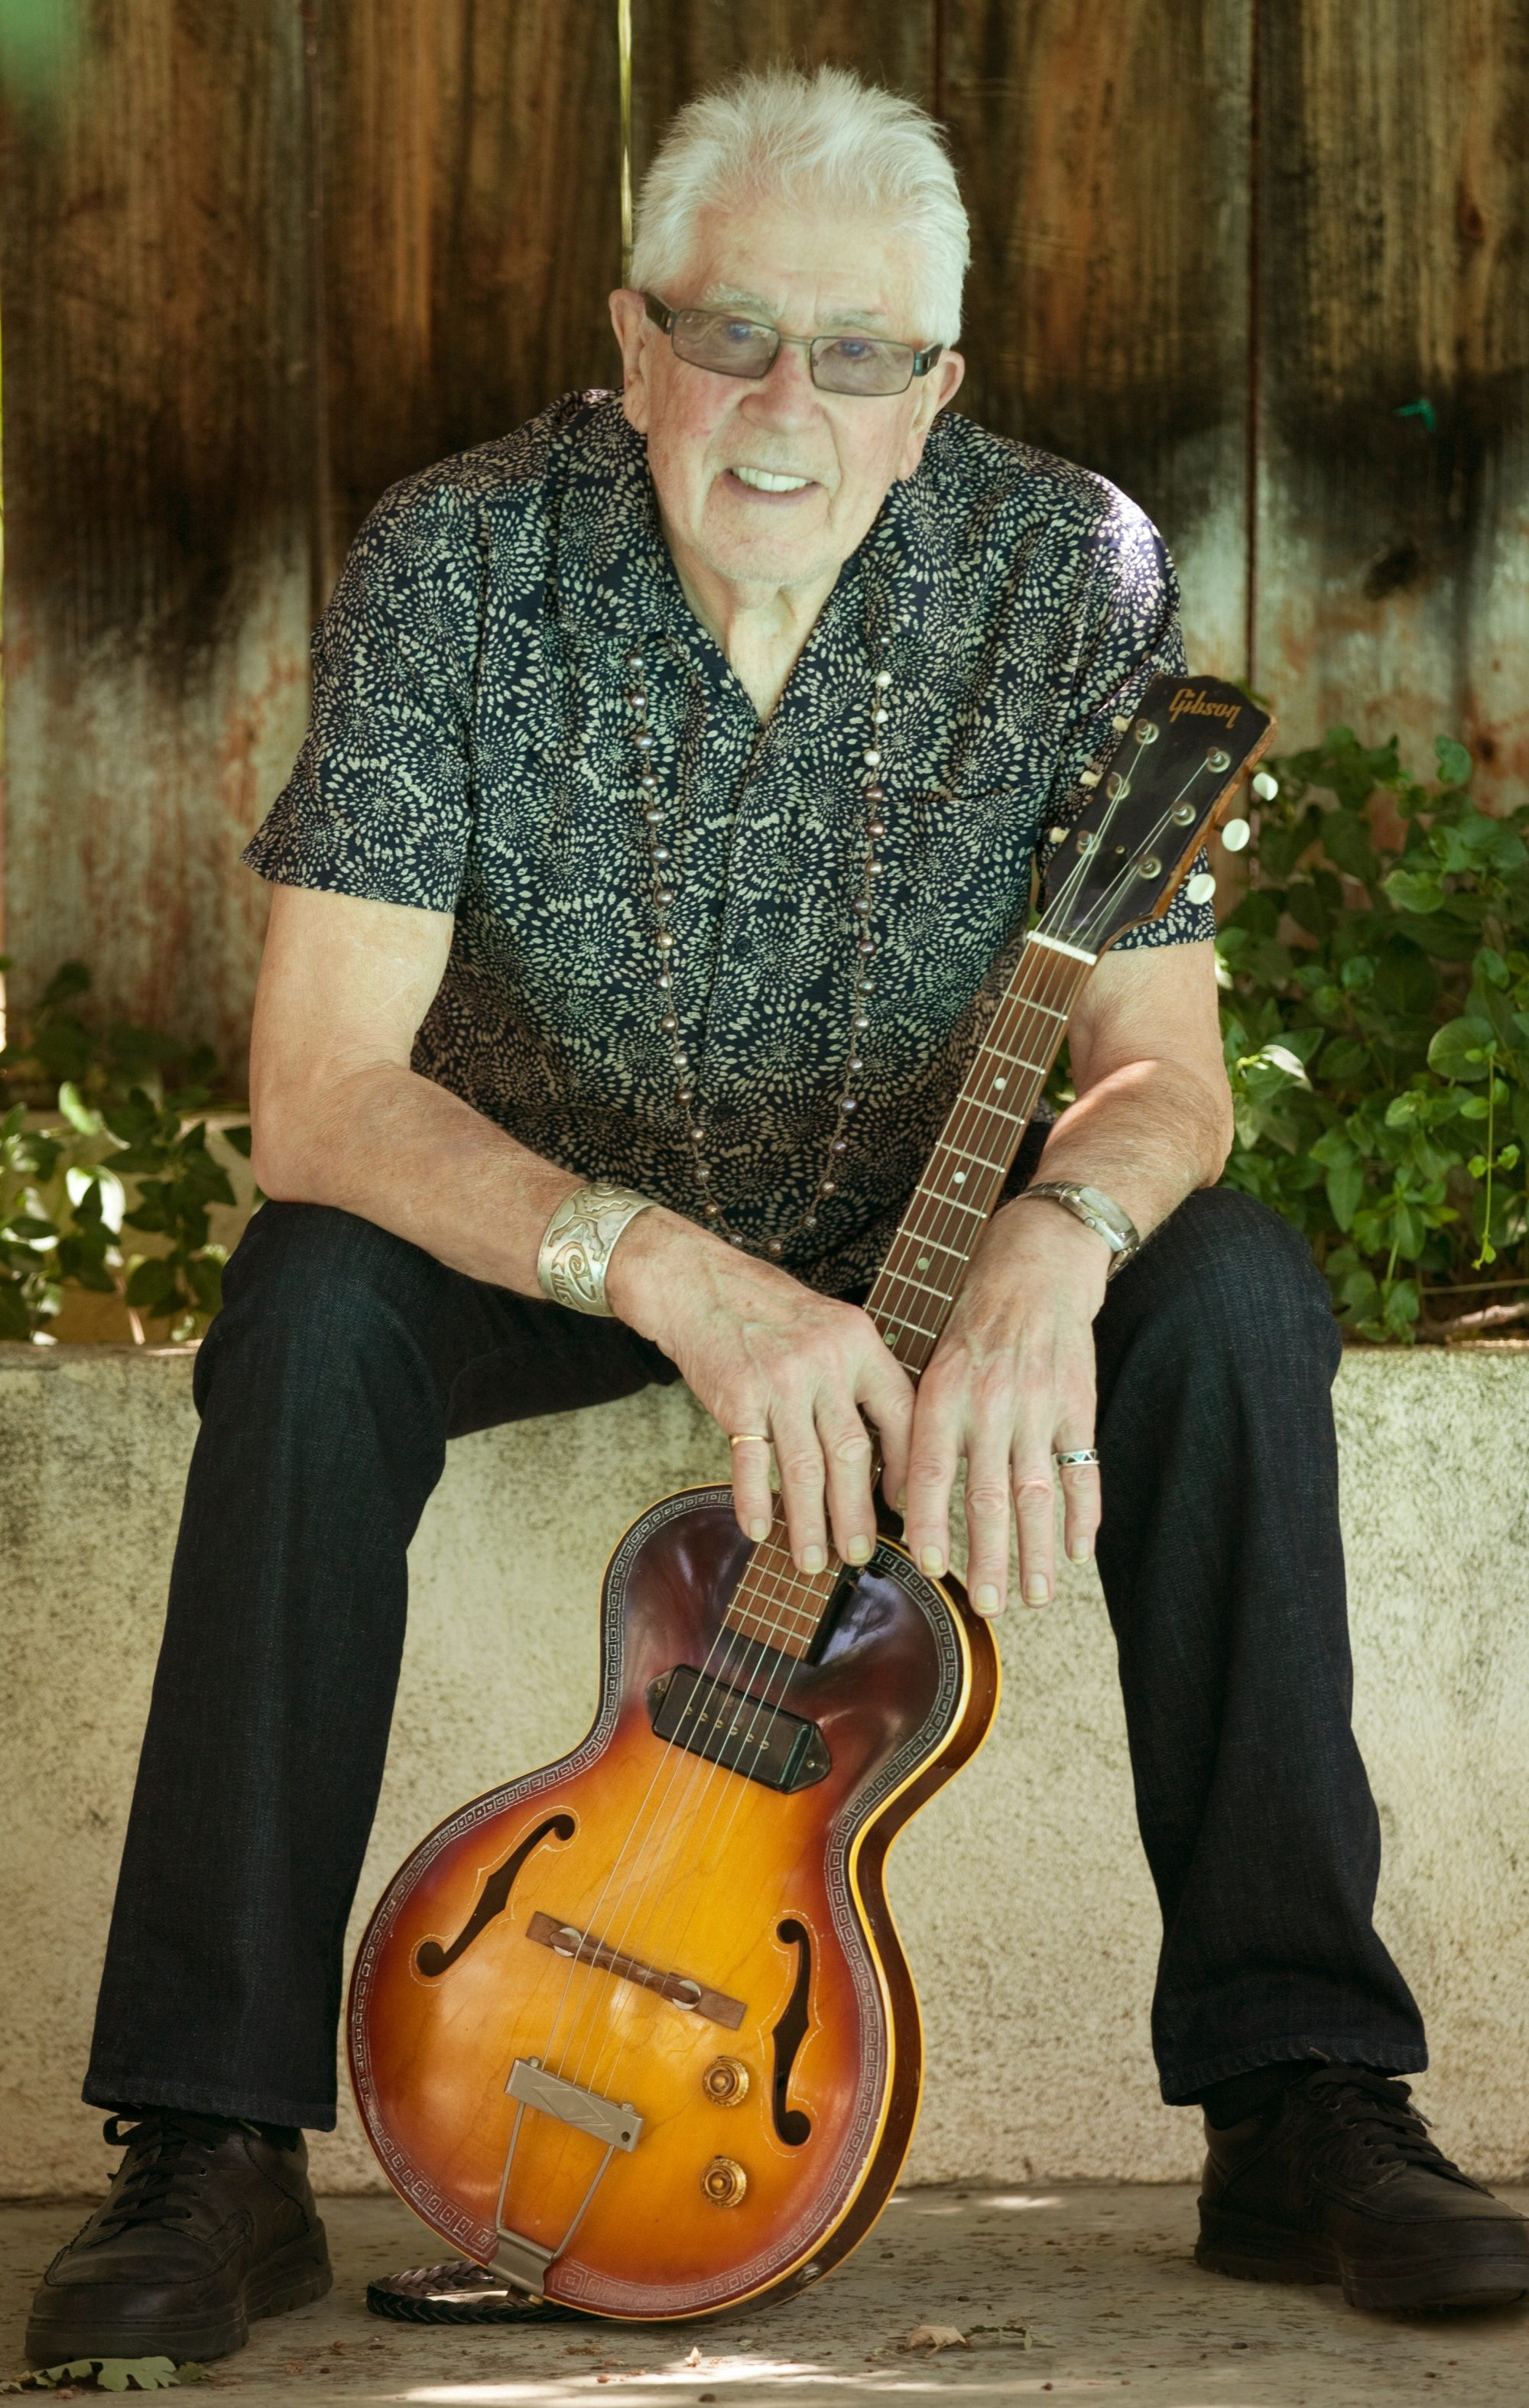 John mayall the cabot often referred to as the godfather of british blues john mayall has an impressive musical career that spans over 50 years the english blues singer publicscrutiny Images